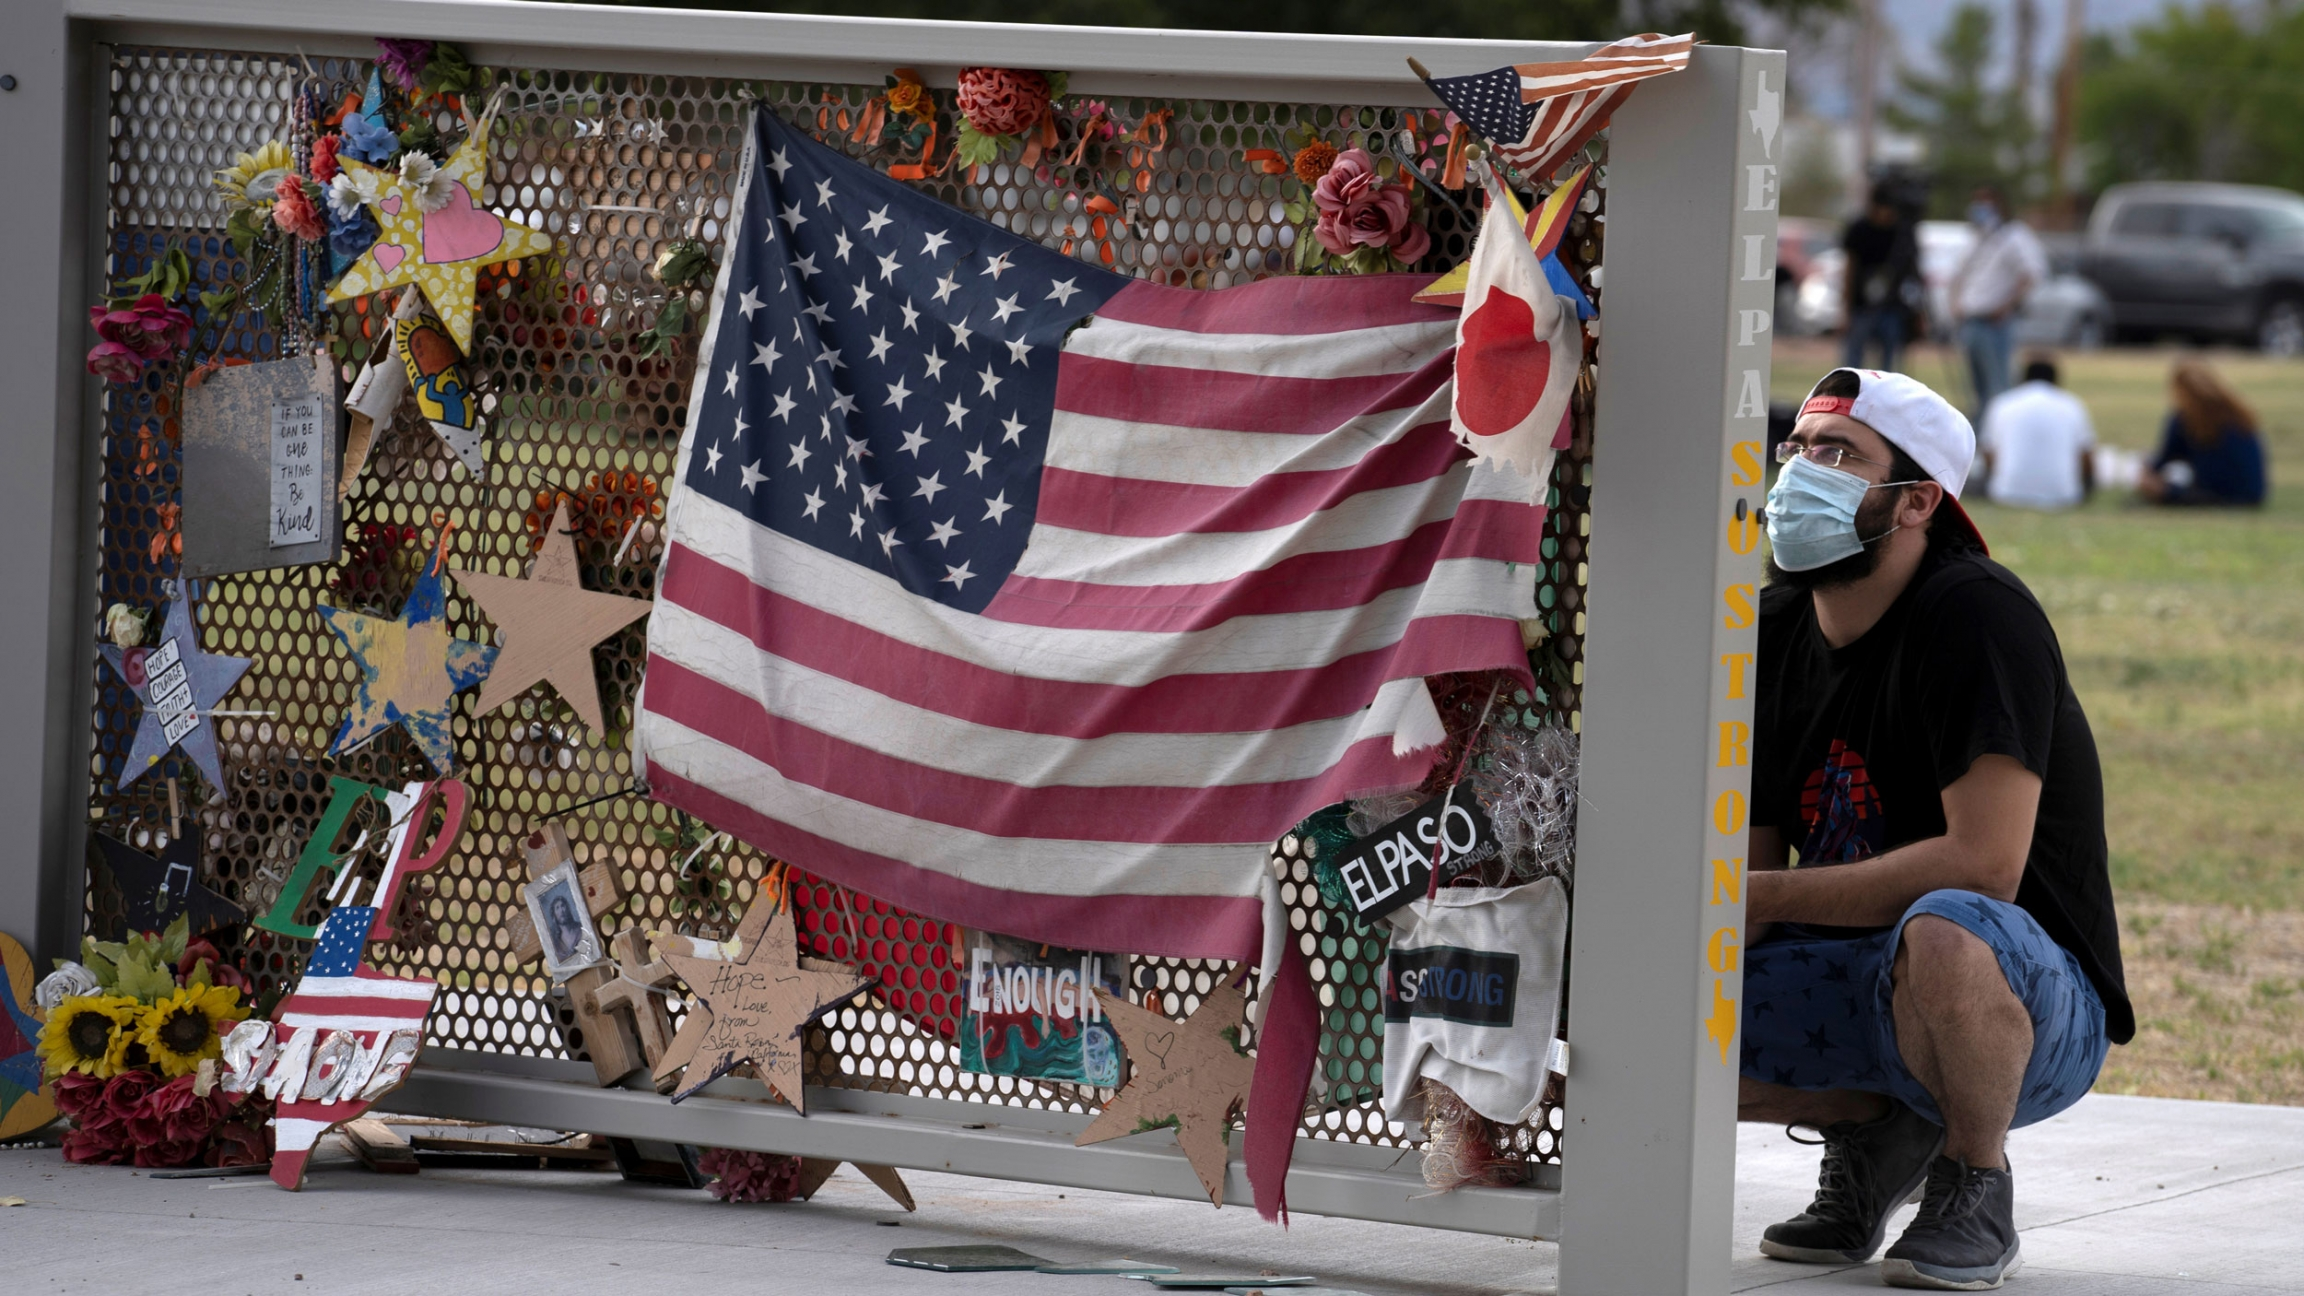 A man is shown kneeling next to a memorial that has stars and an American flag pinned on it.